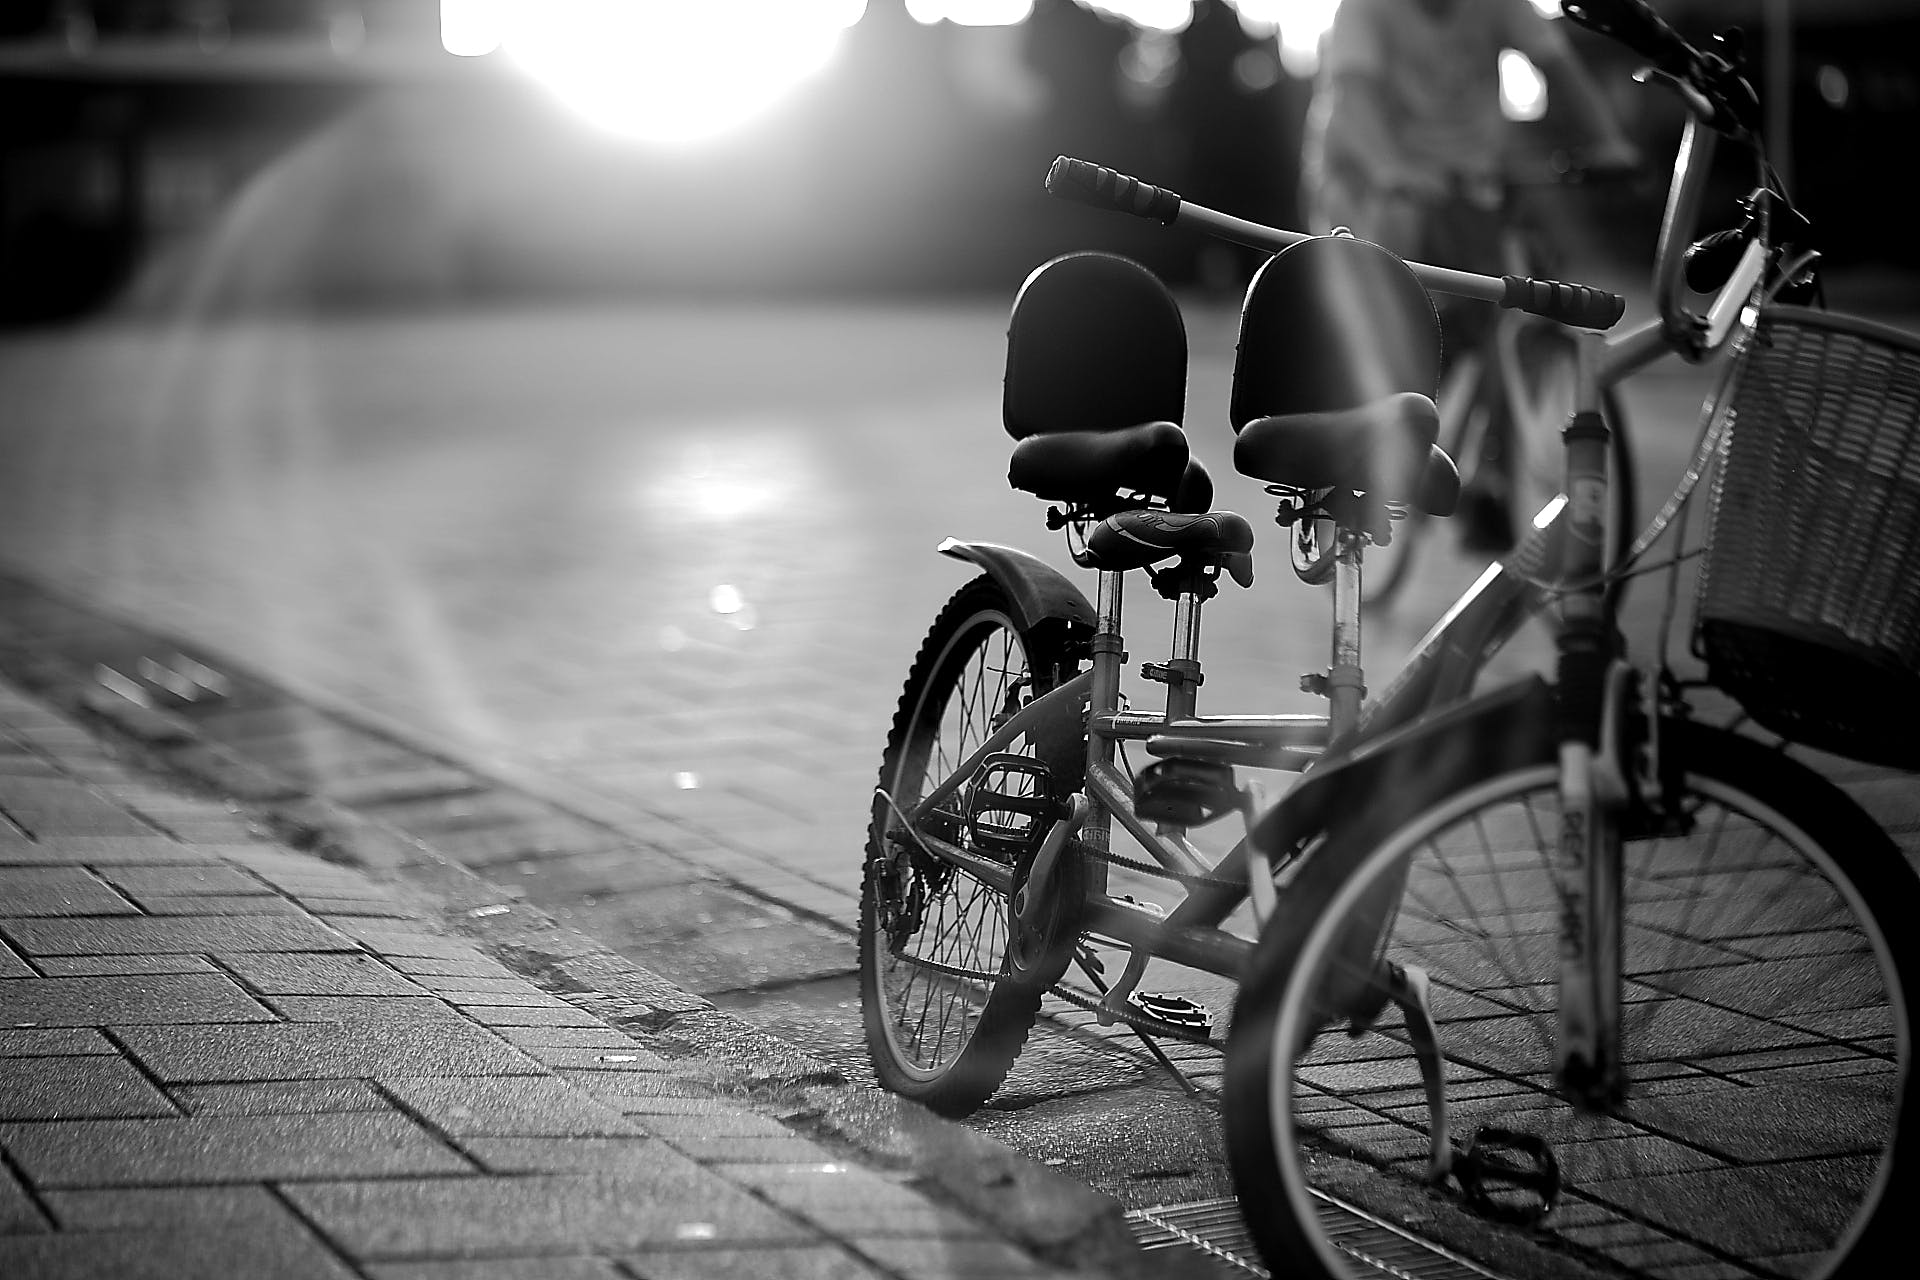 Tandem Bicycle on Sidewalk in Greyscale Photography